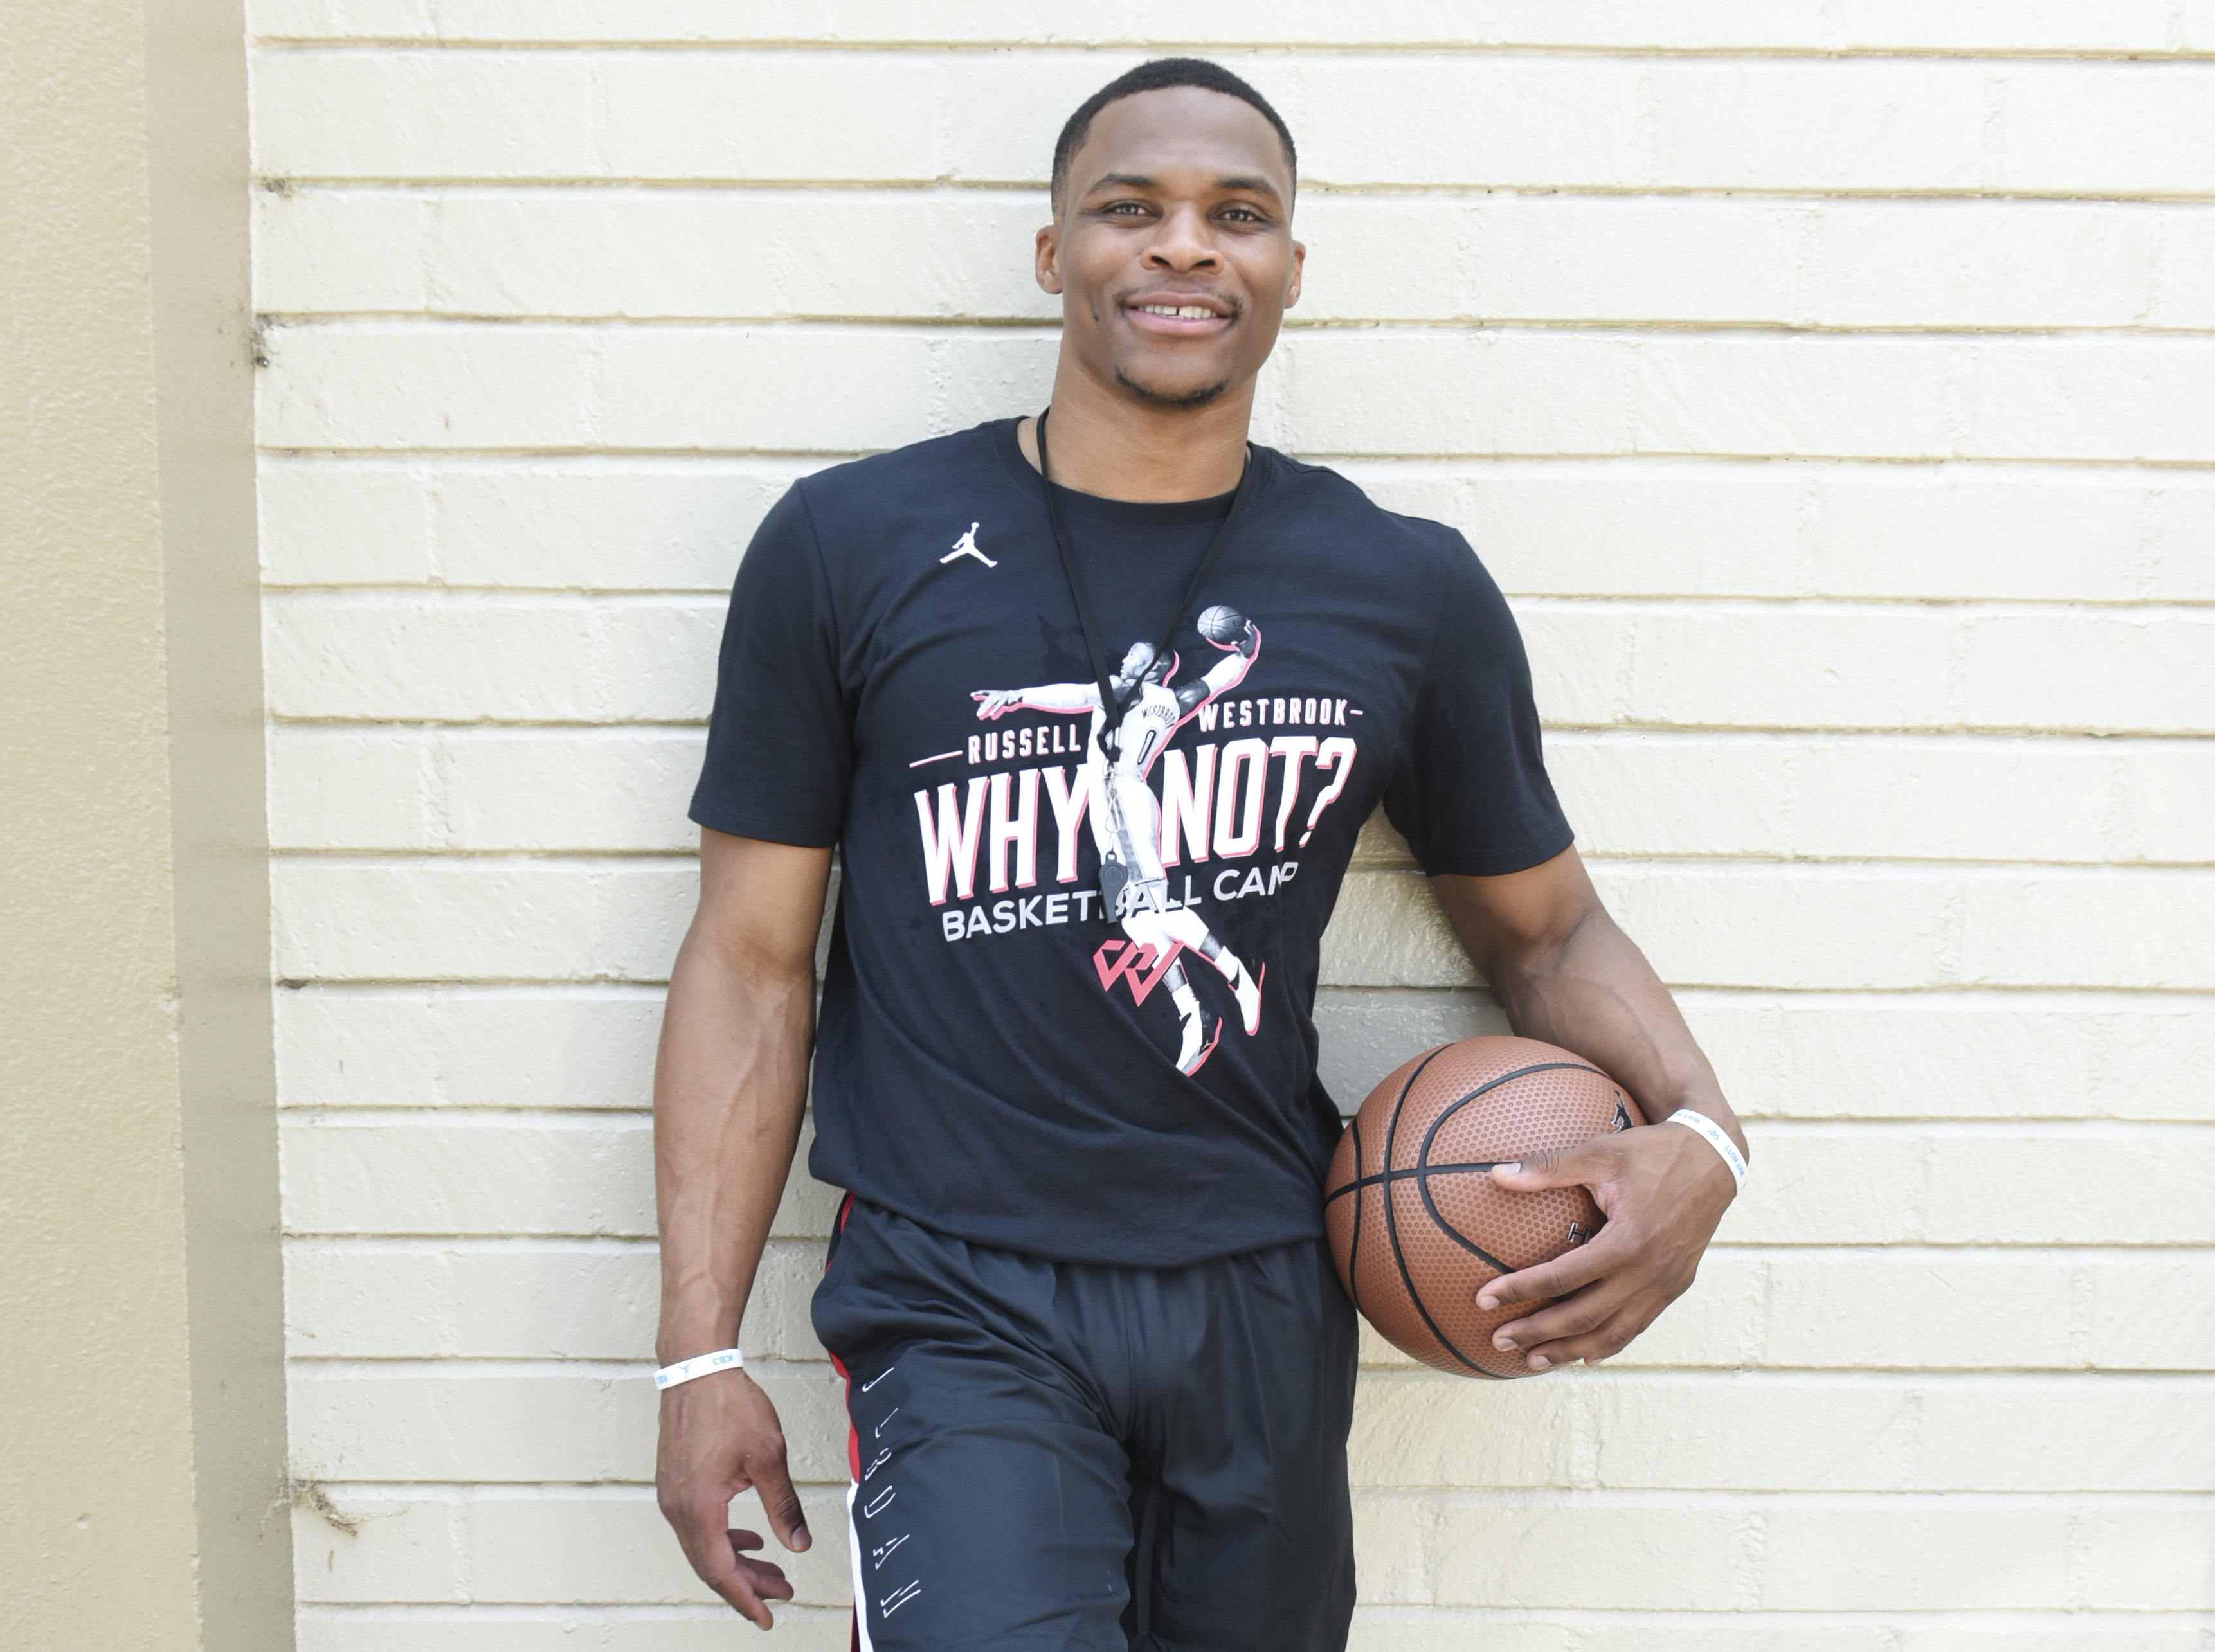 Russell Westbrook attends the 6th Annual Russell Westbrook Why Not? Basketball Camp on August 2, 2018, in Los Angeles, California.   Source: Getty Images.